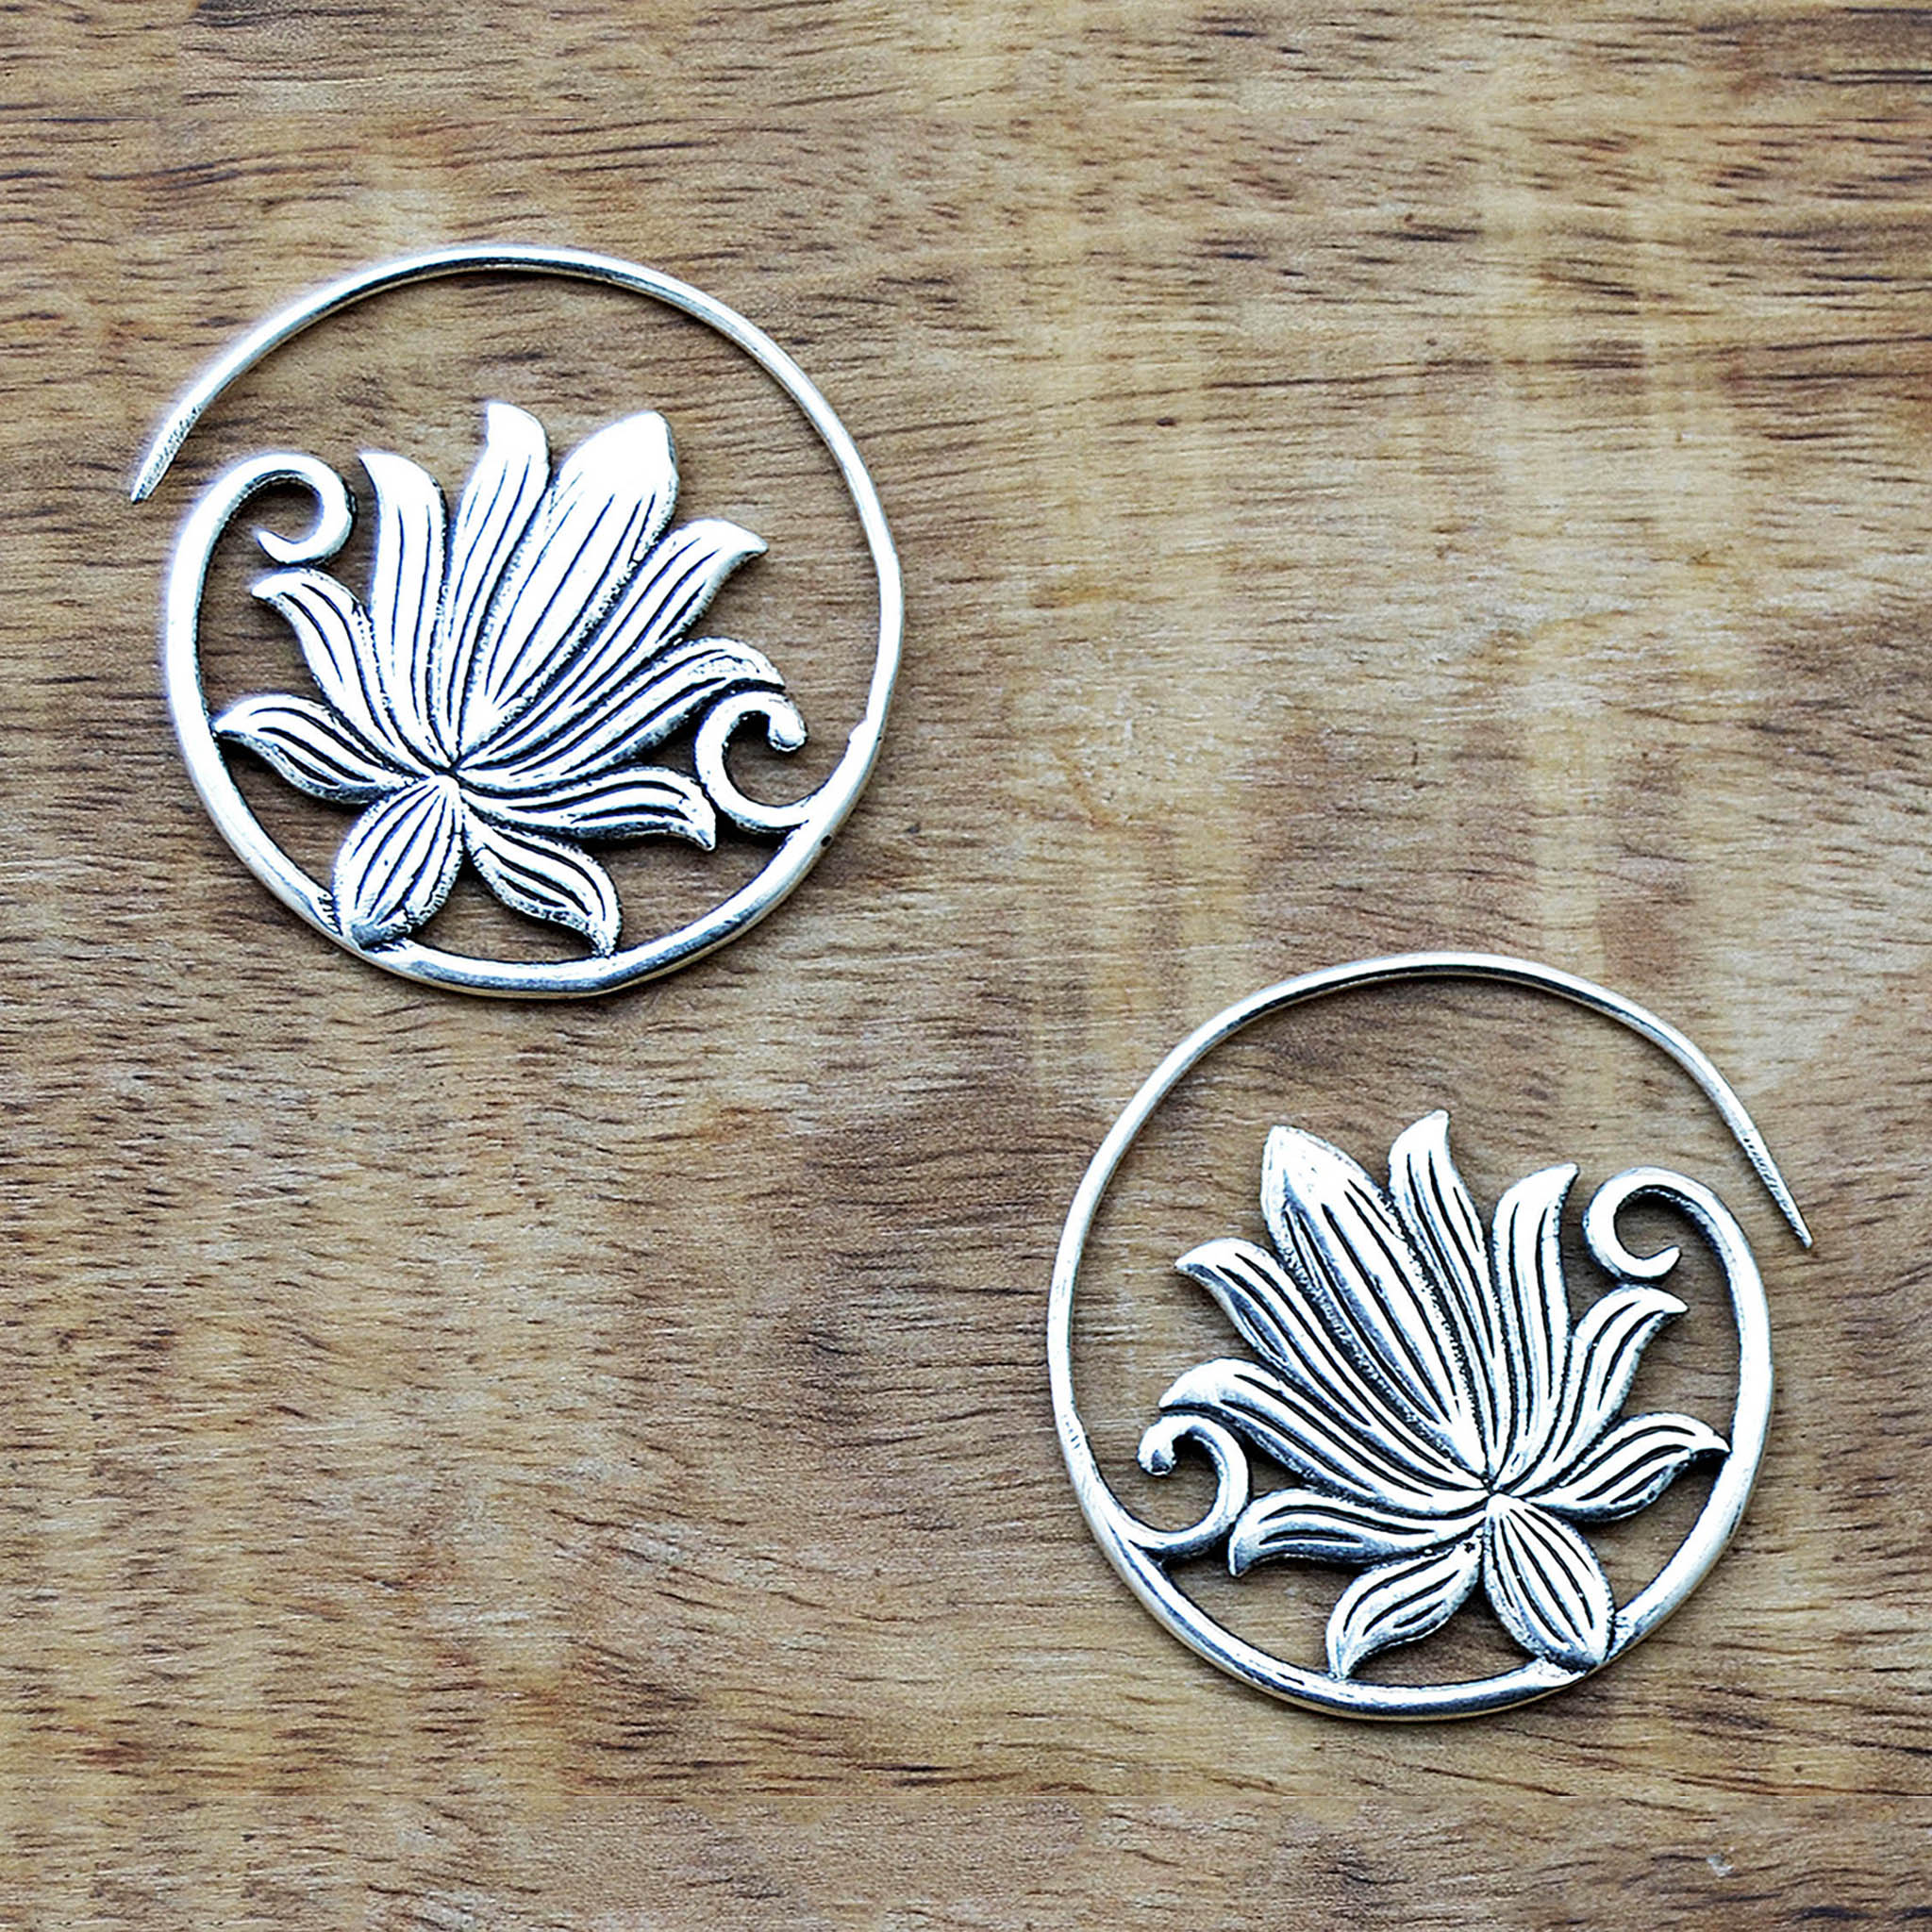 Ethnic lotus earrings